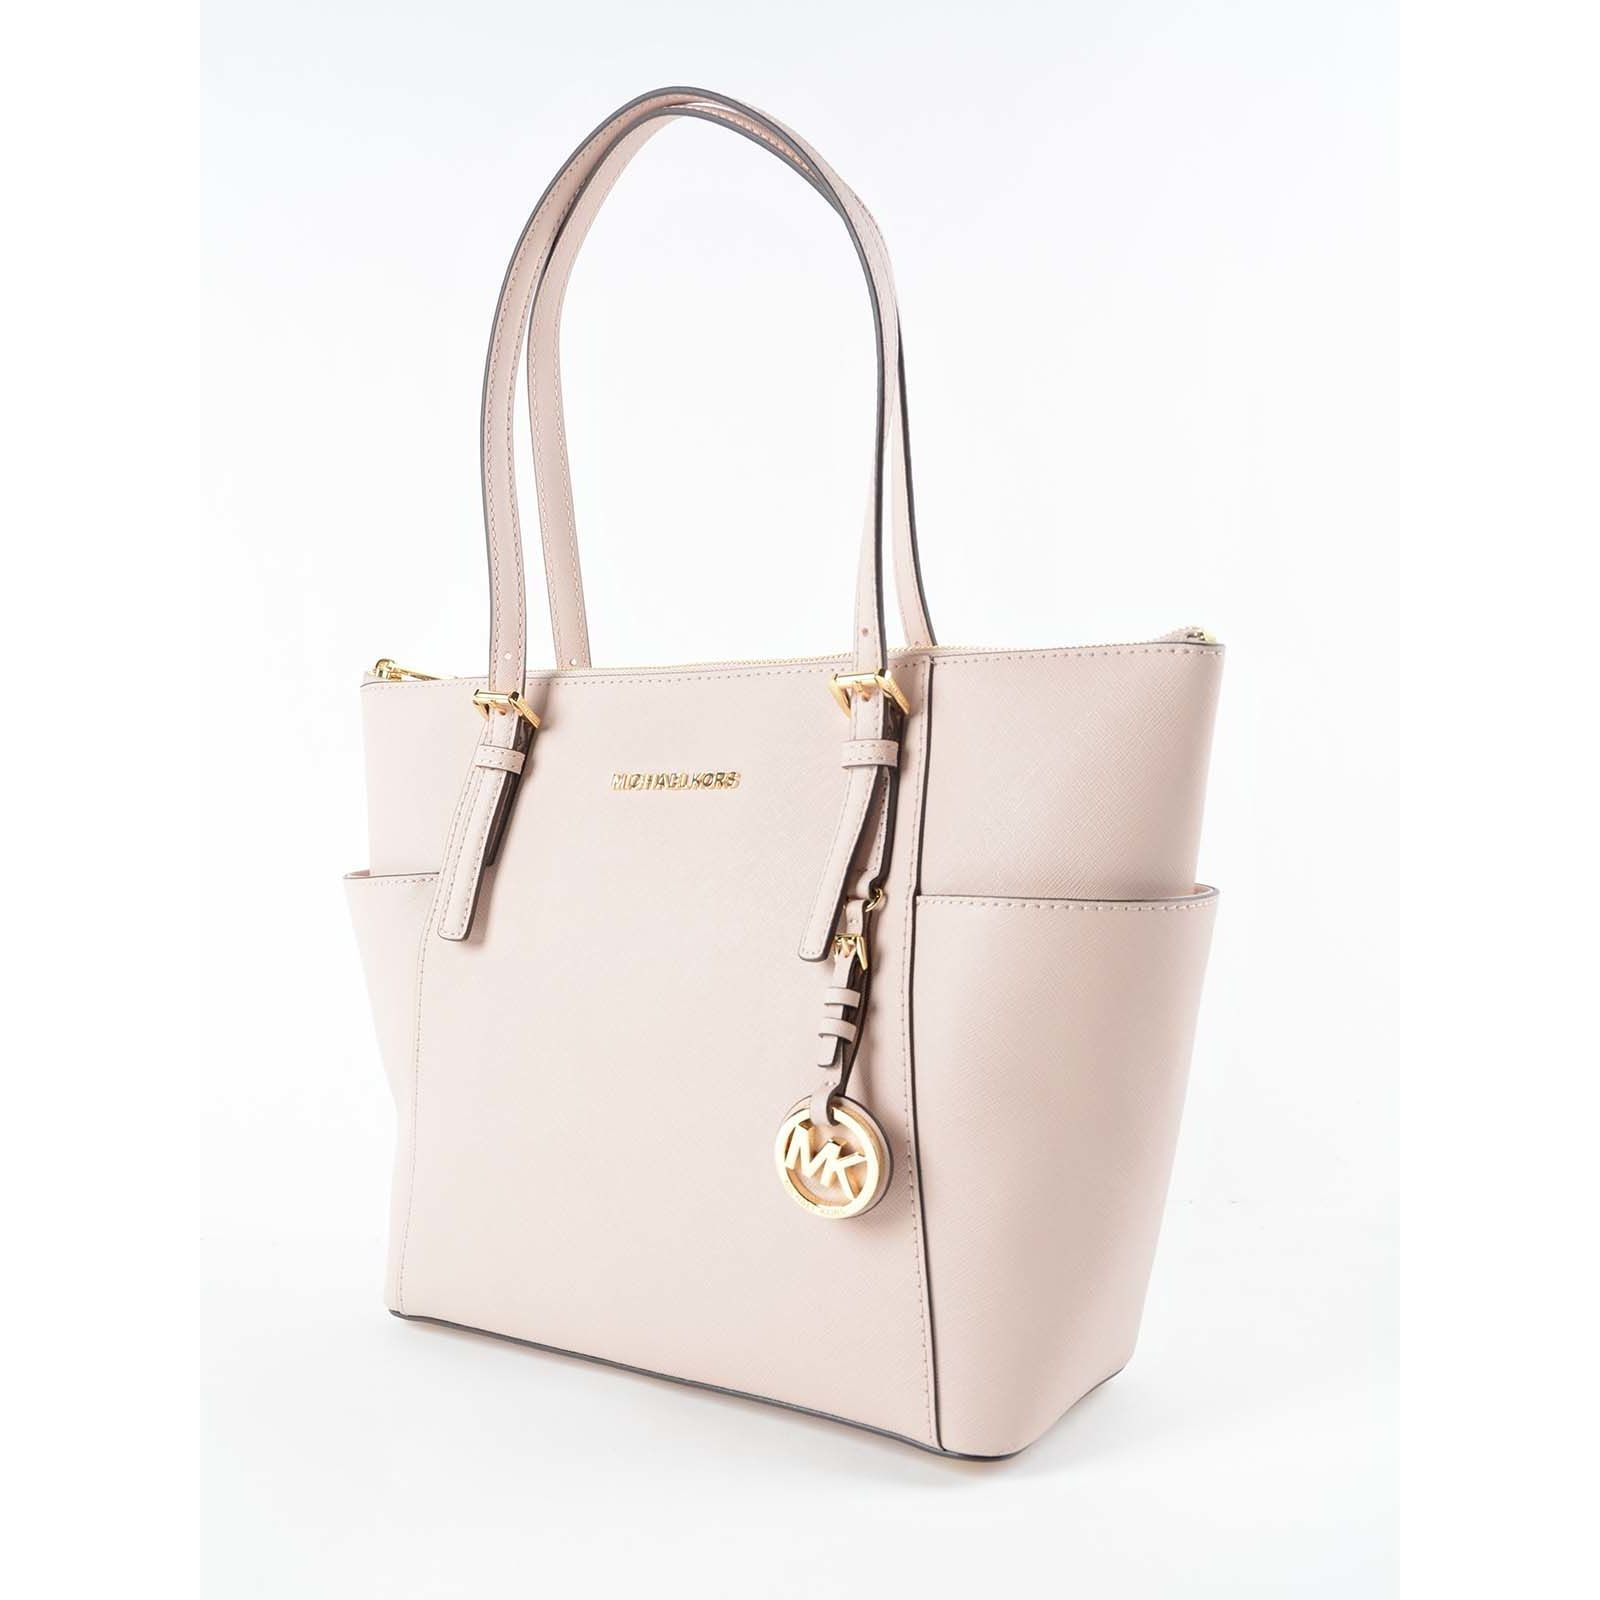 d6cd3bacc558 Shop Michael Kors Jet Set East West Pink Leather Large Top Zip Tote Bag -  Free Shipping Today - Overstock - 16536731